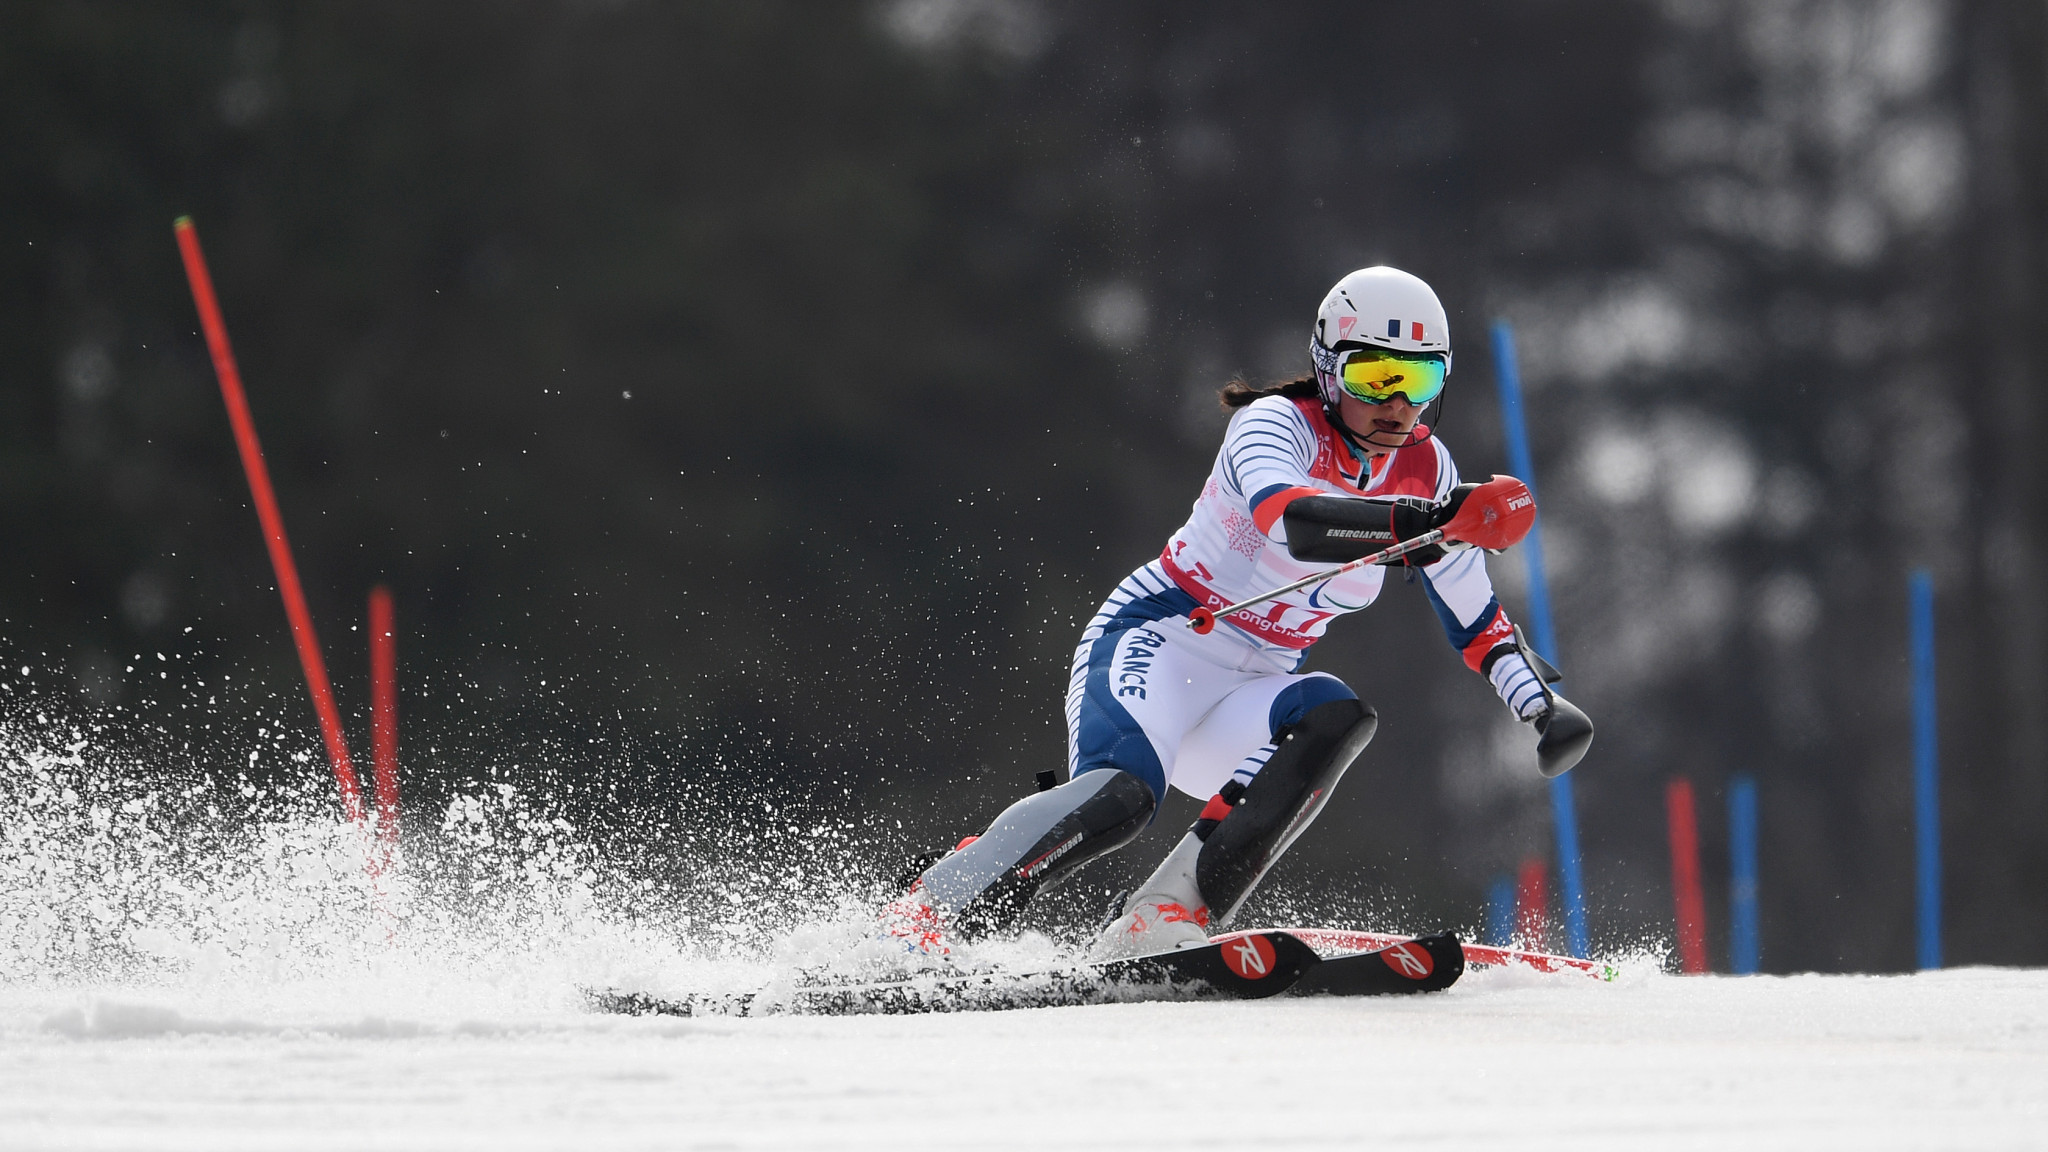 Marie Bochet of France, a 20-time world champion and six-time Paralympic champion, could only finish third in the women's standing giant slalom ©Getty Images